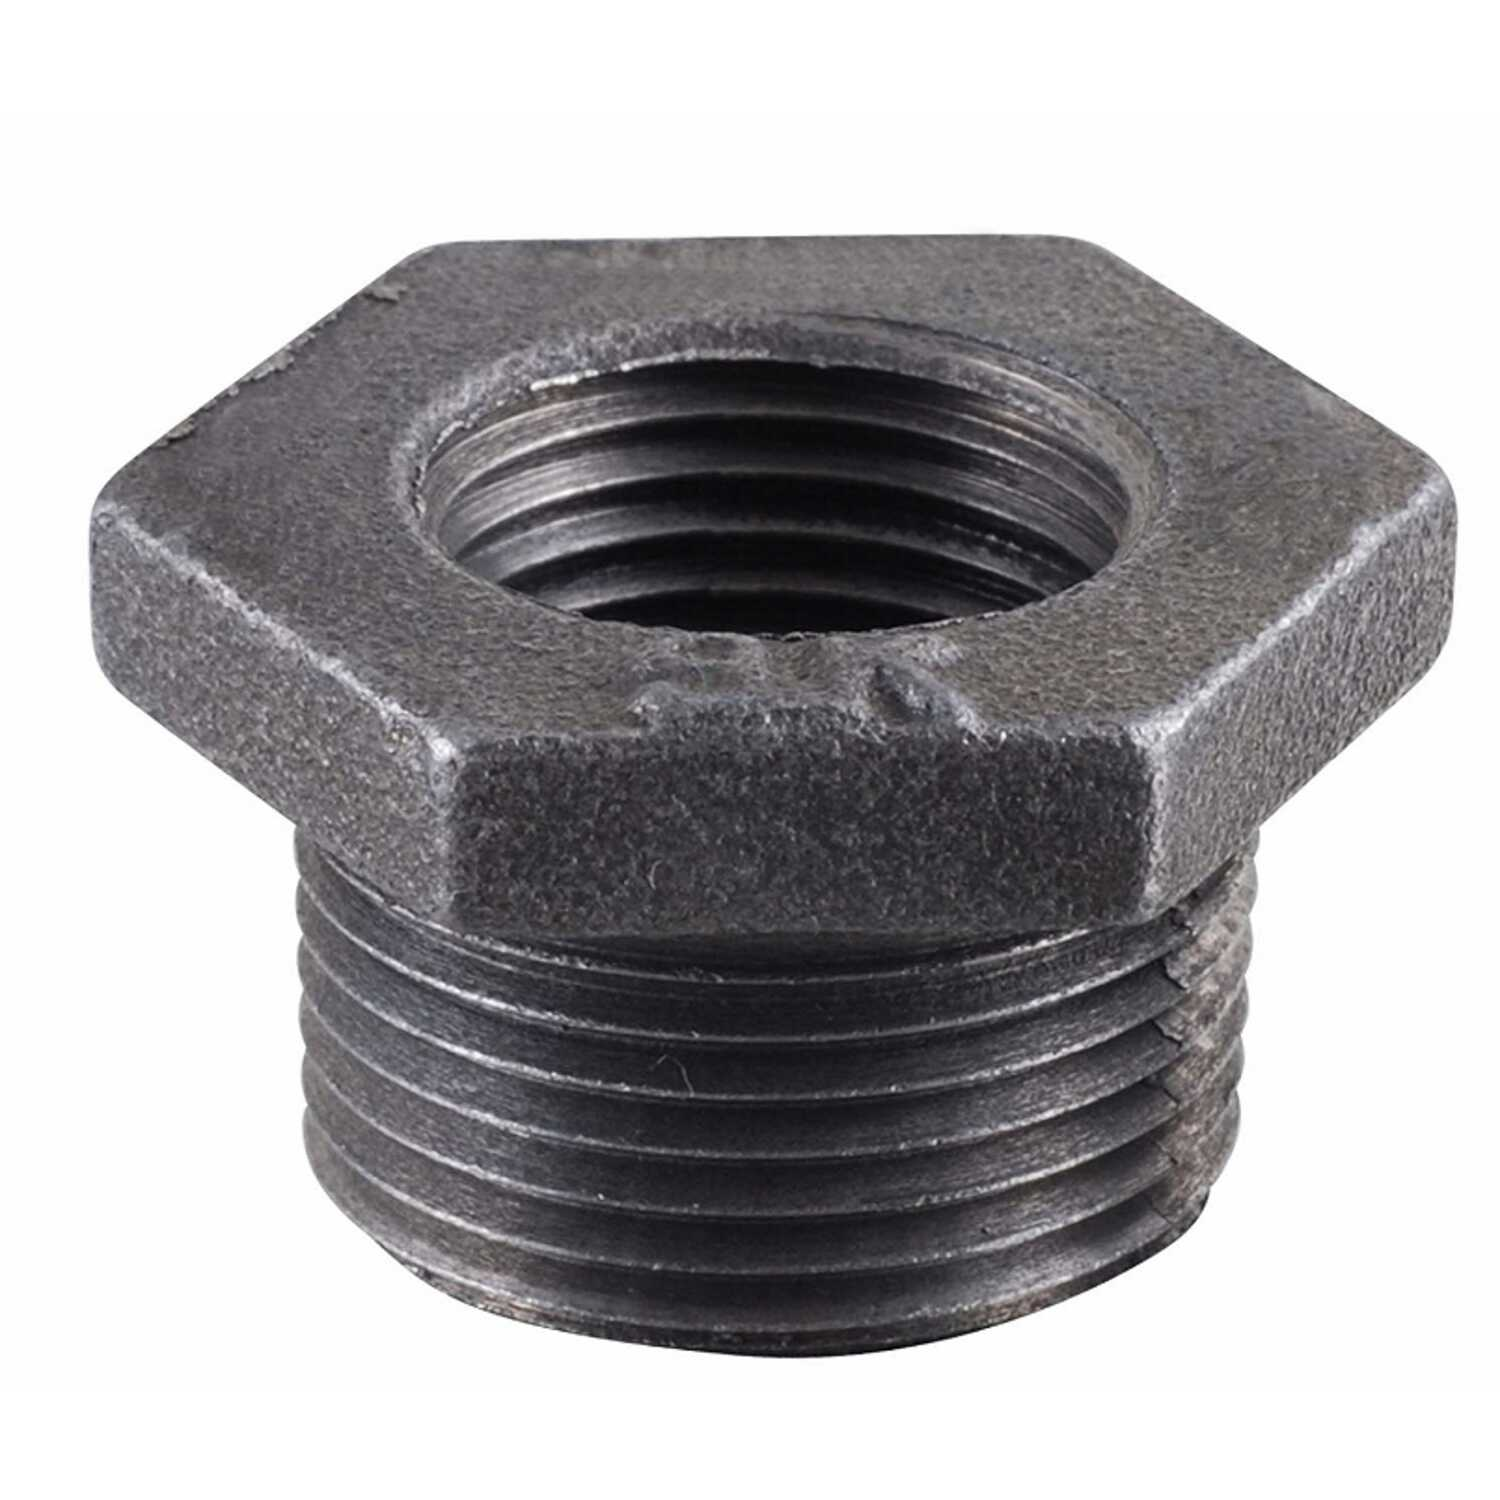 BK Products  1-1/4 in. MPT   x 1 in. Dia. FPT  Black  Malleable Iron  Hex Bushing